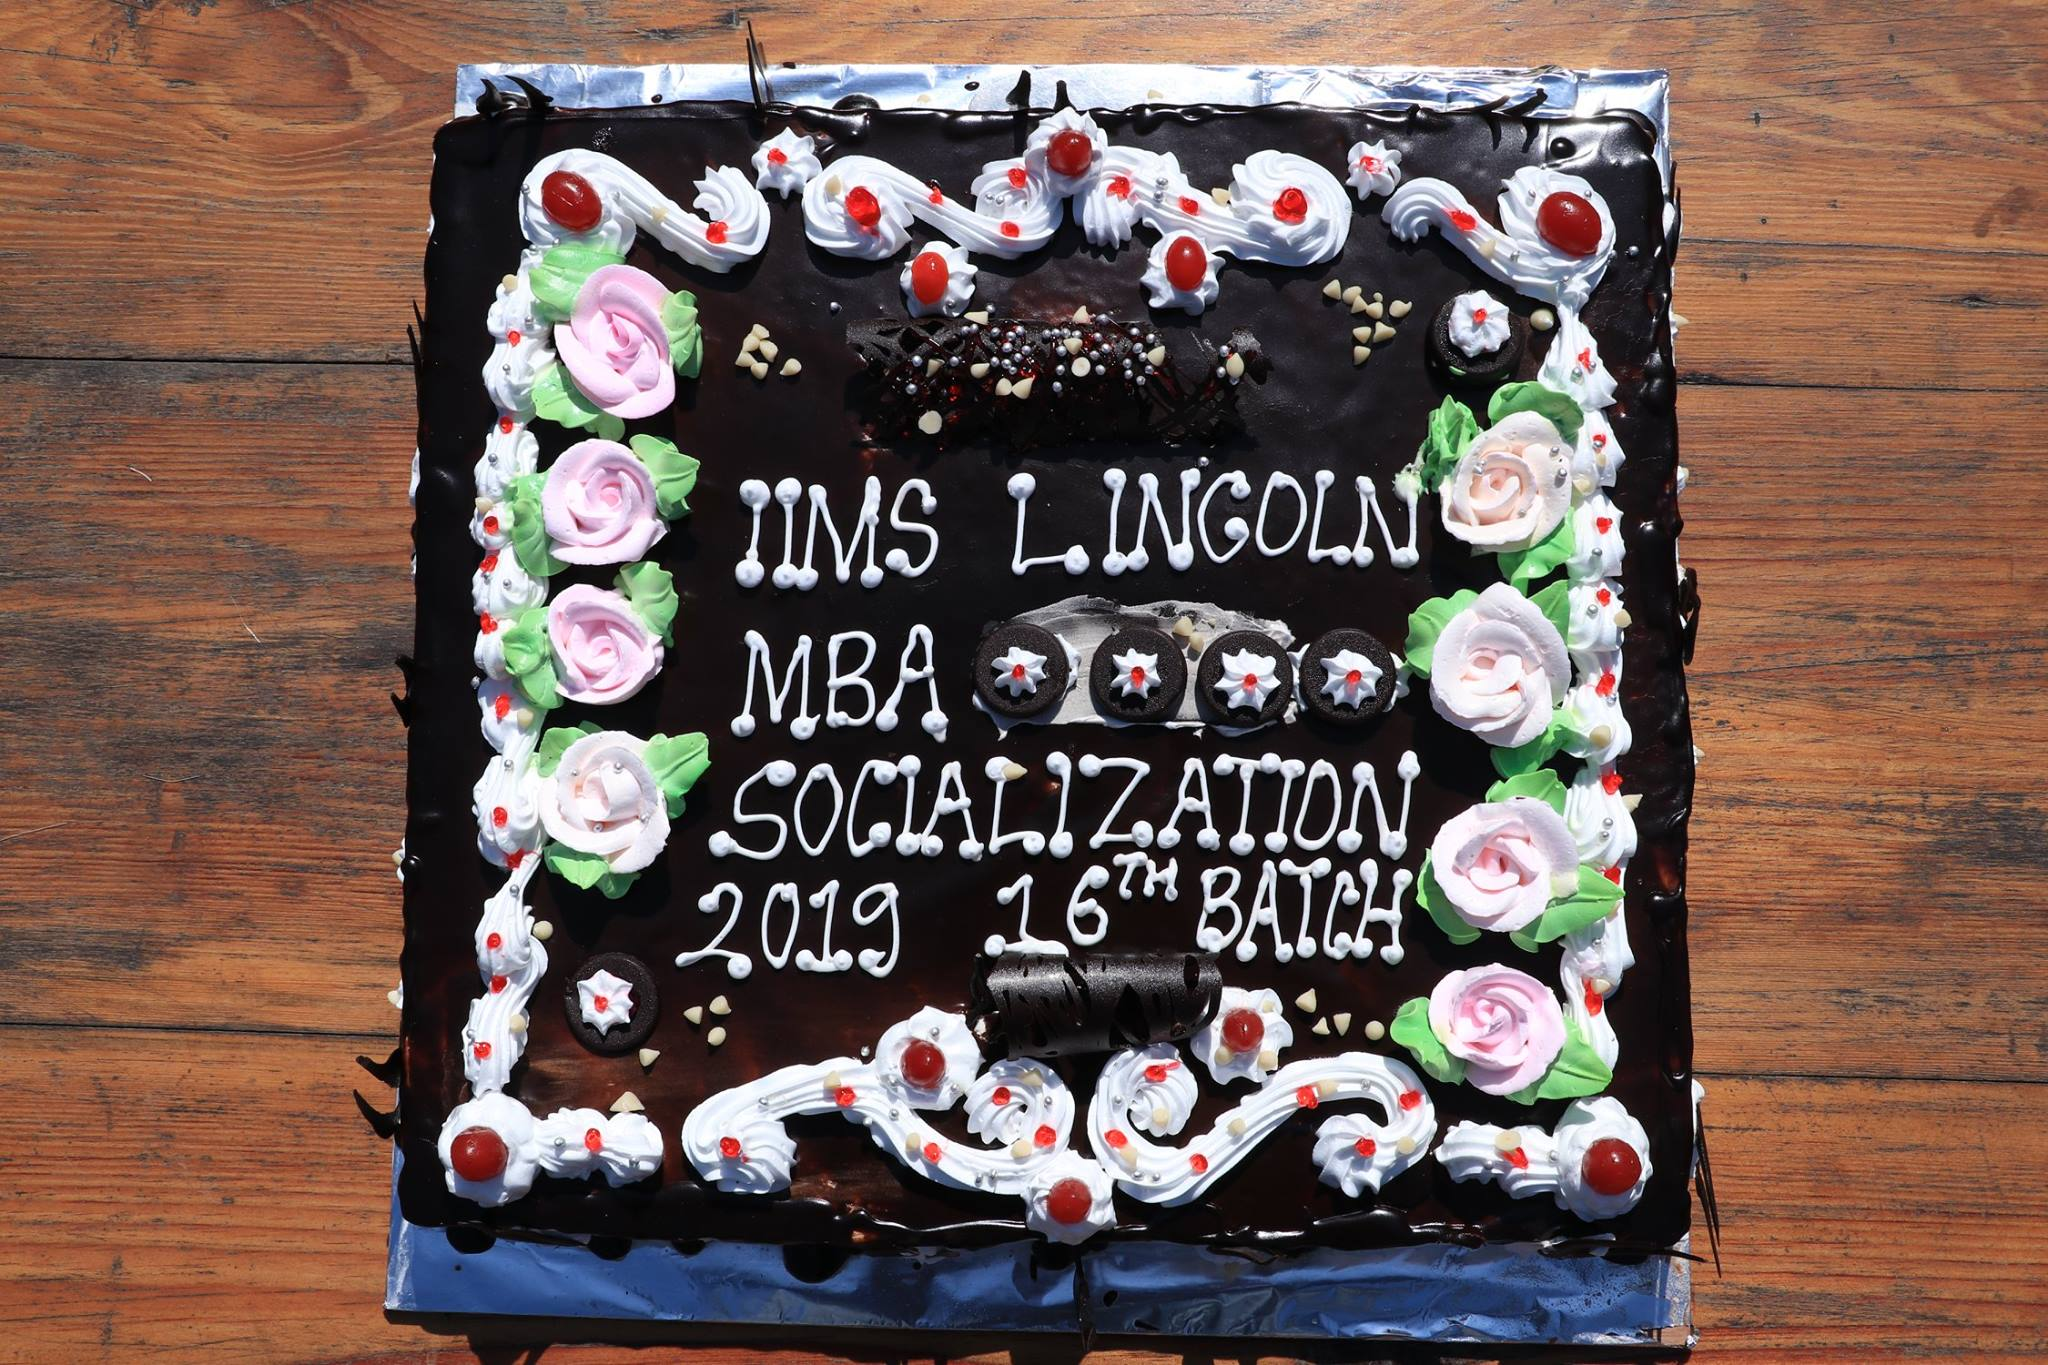 MBA Socialization Program 2019 March